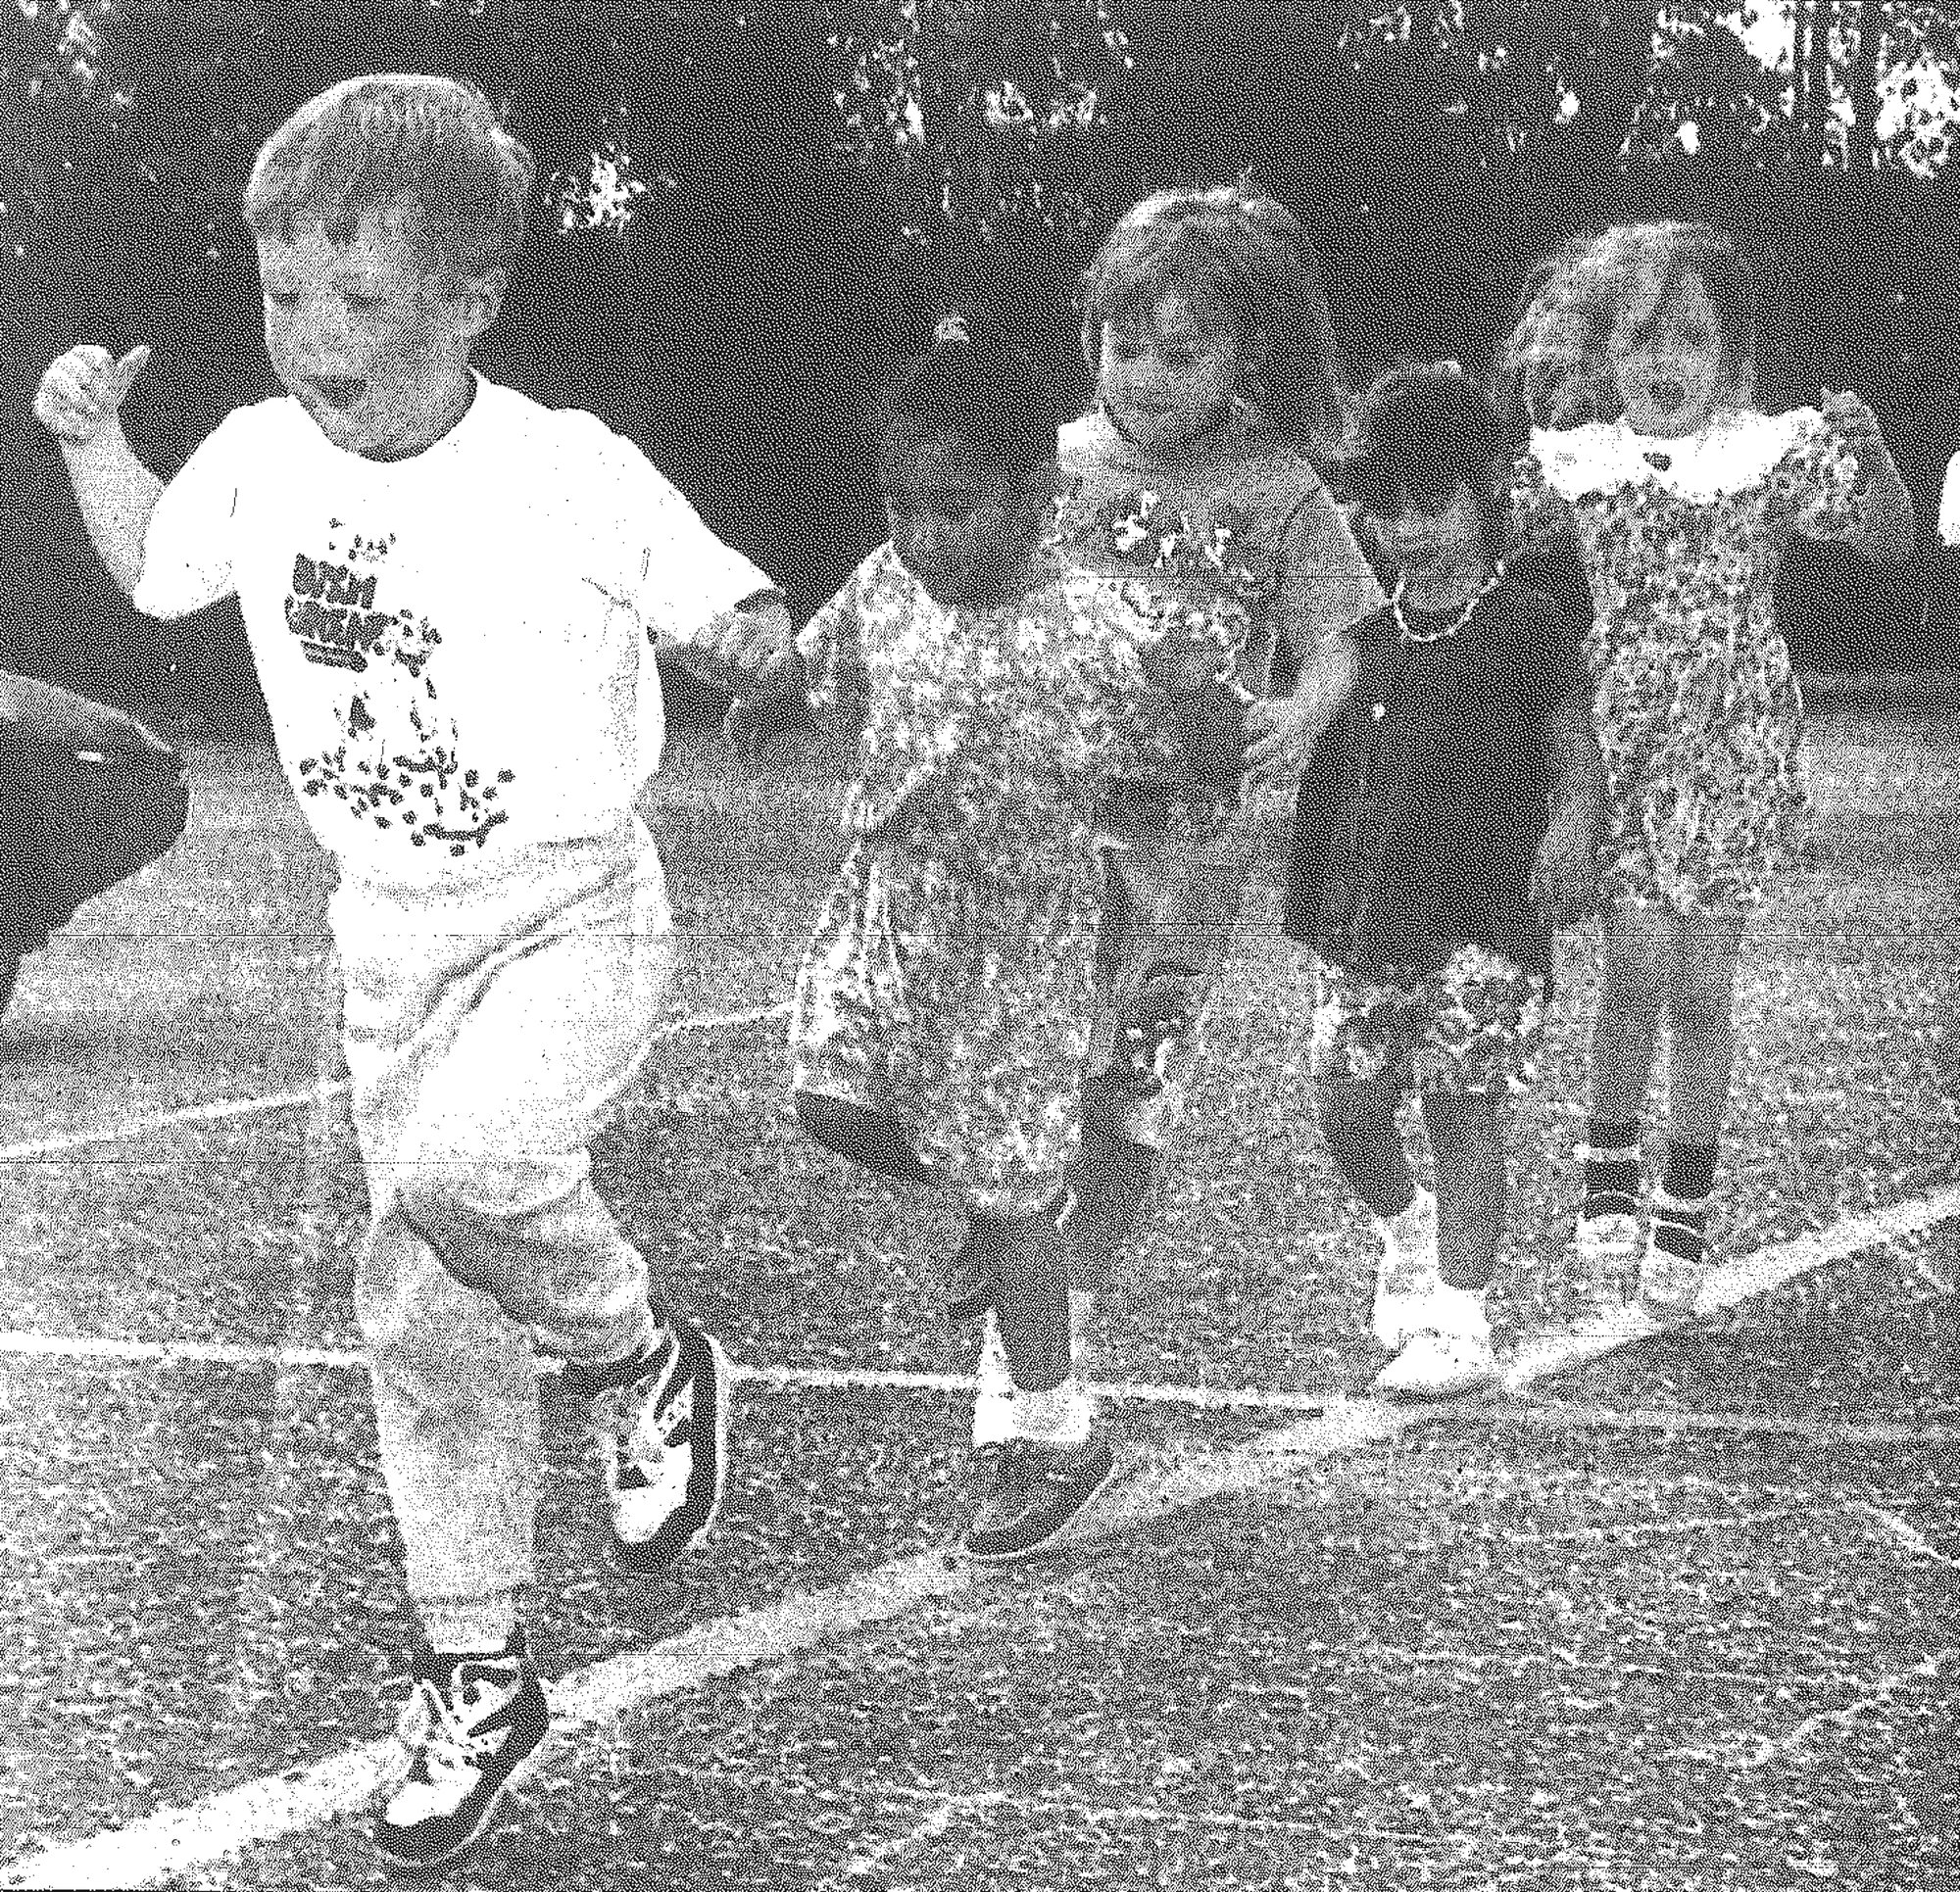 Twenty-eight children from Sumter's La Petite Academy skipped, hopped and walked backward in April 1995 to raise money for the Children's Miracle Network in the parking lot of the Piggly Wiggly on Pinewood Road. From left are Tyler Broome, 4; Regina Malloy, 4; Taylor Davids, 5; Jennifer Ouellette, 4; and Jacklyn MacLean, 5.